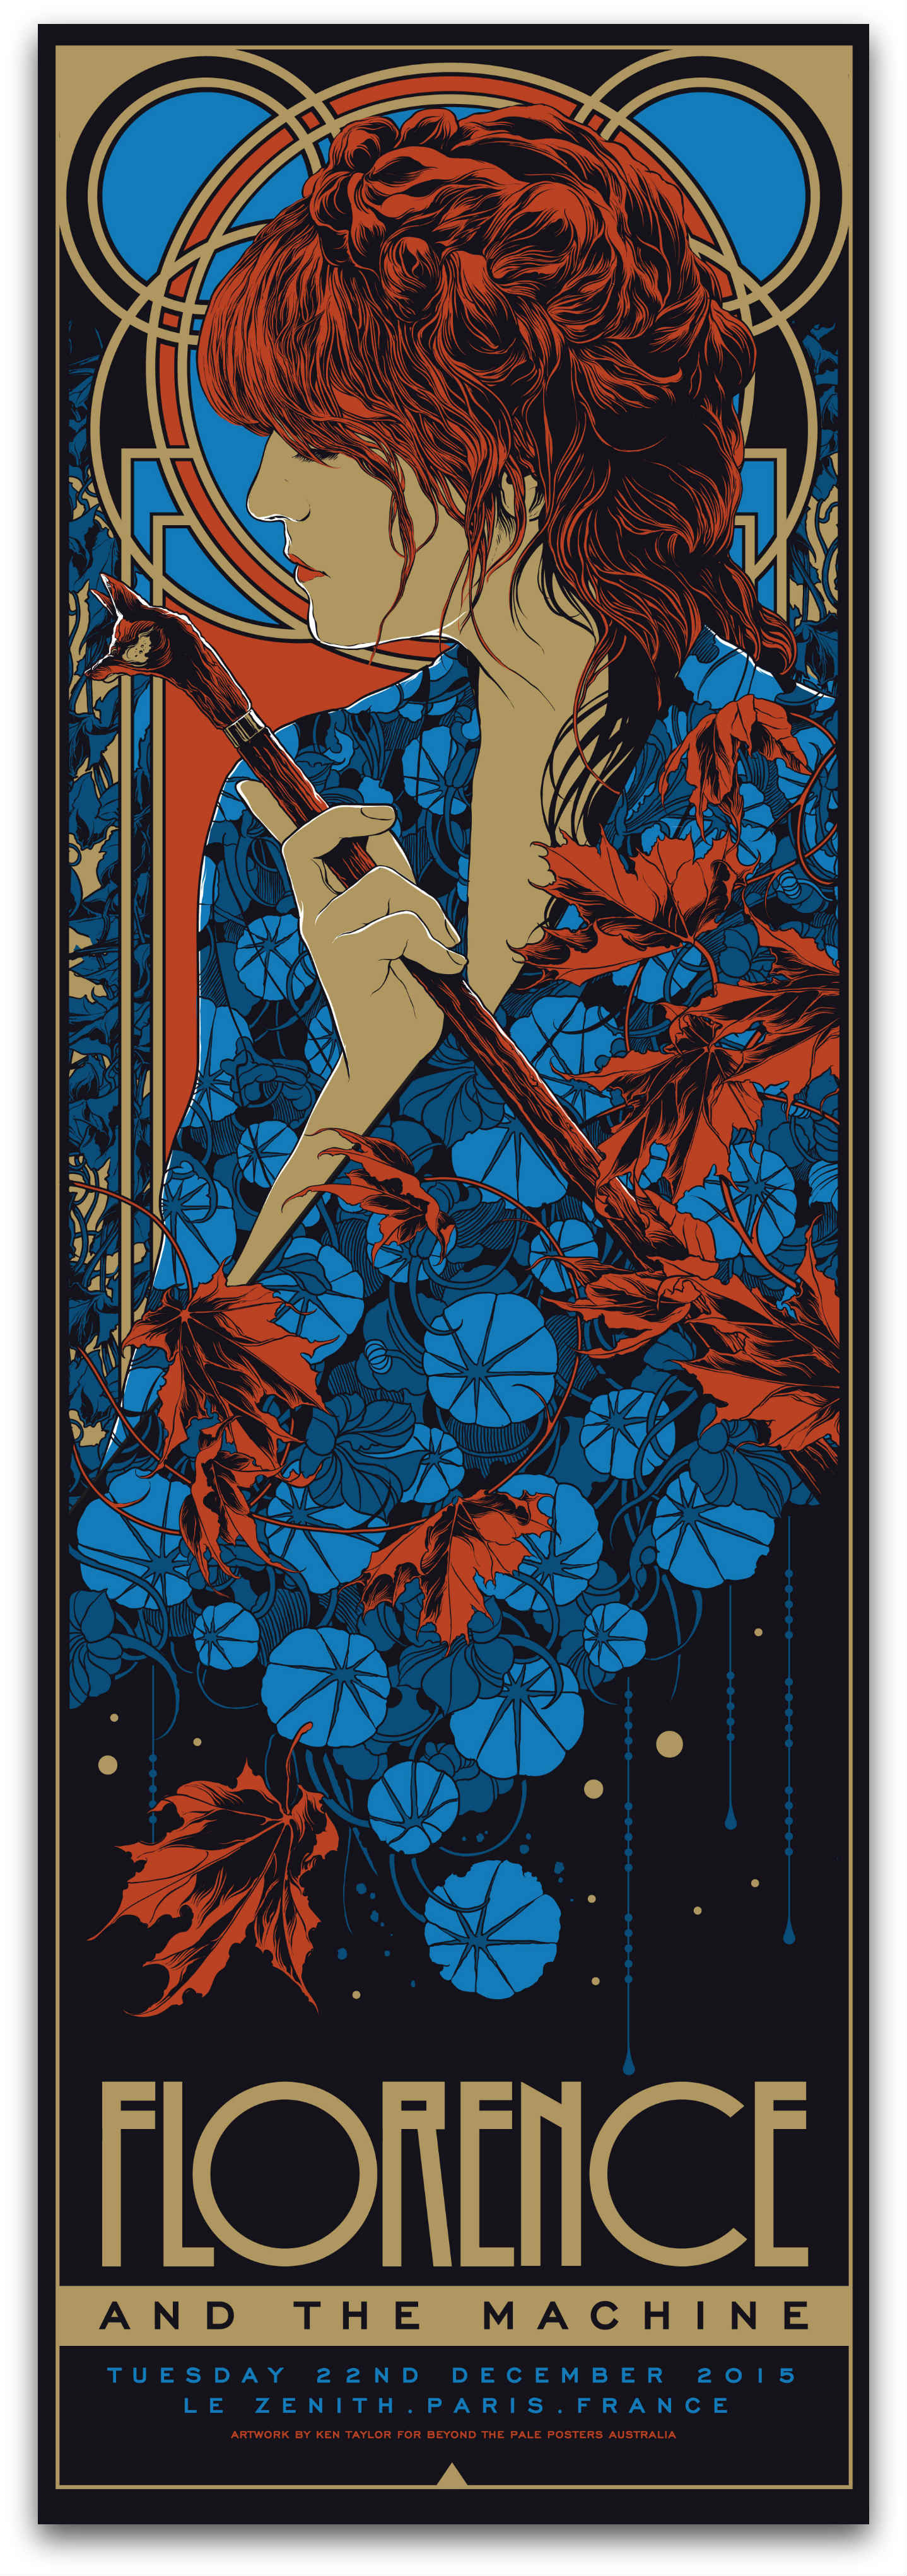 """Florence & The Machine - Paris, France 2015"" by Ken Taylor.  12"" x 36"" 5-color Screenprint.  Ed of 350 S/N.  $38"